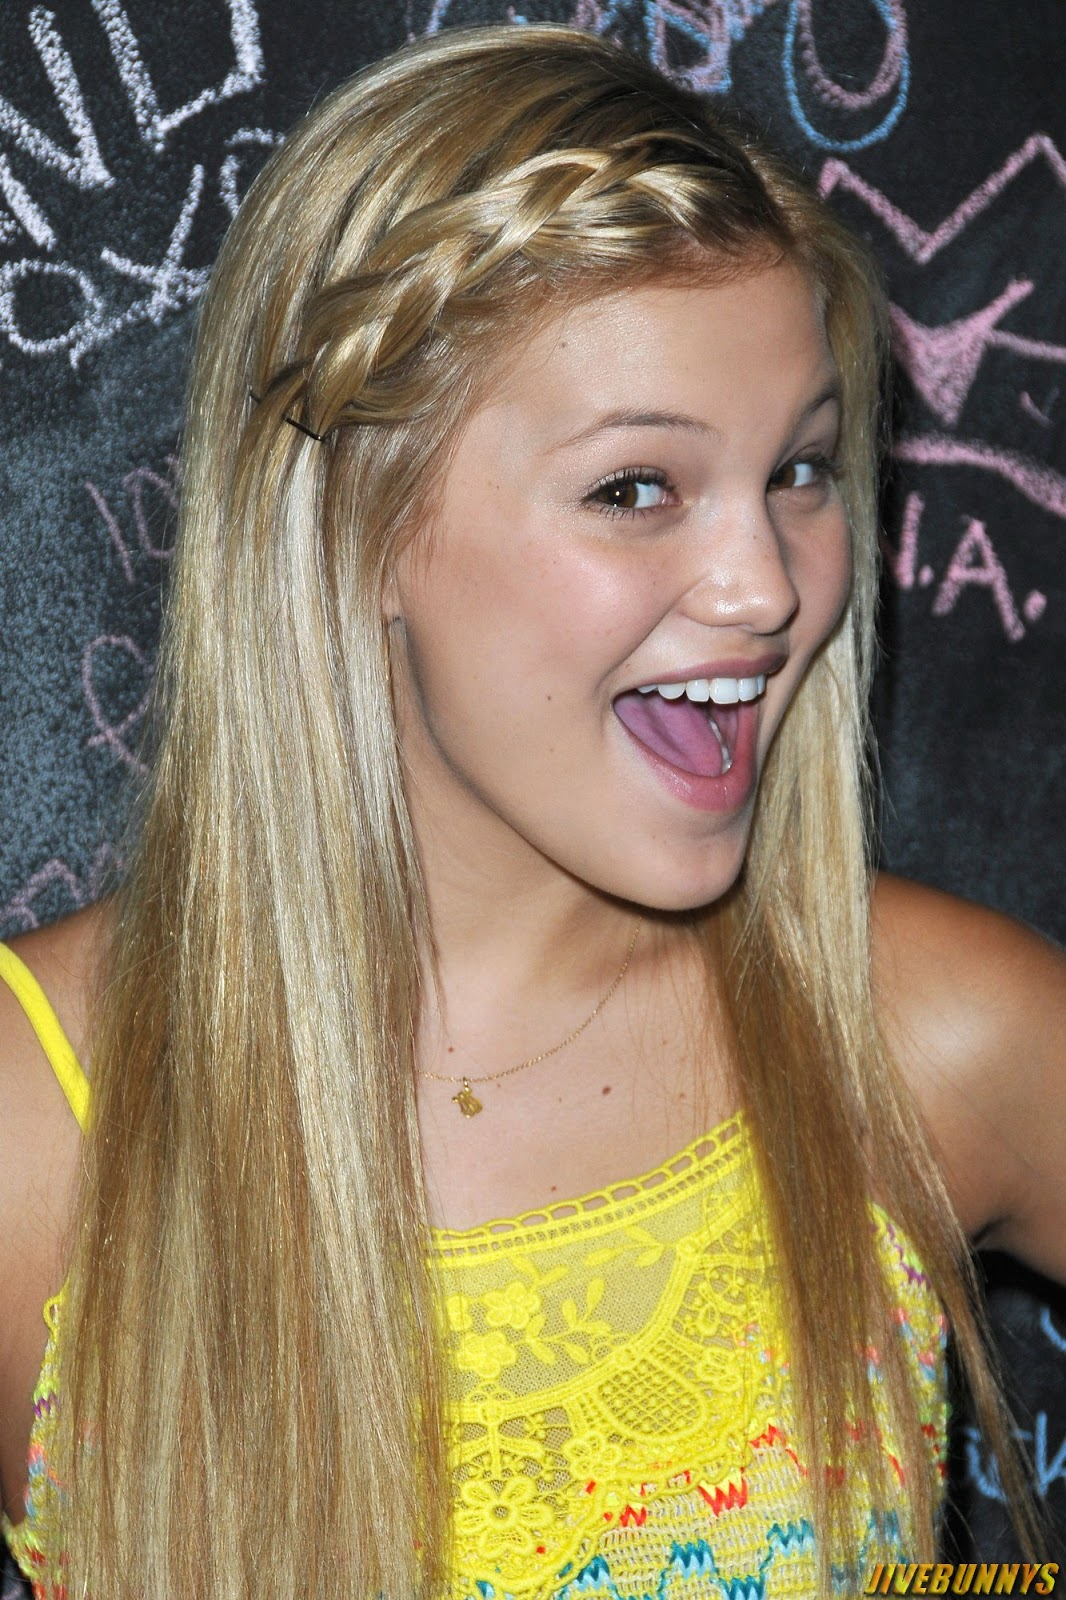 Olivia Holt Cute Blonde Actress S Gallery